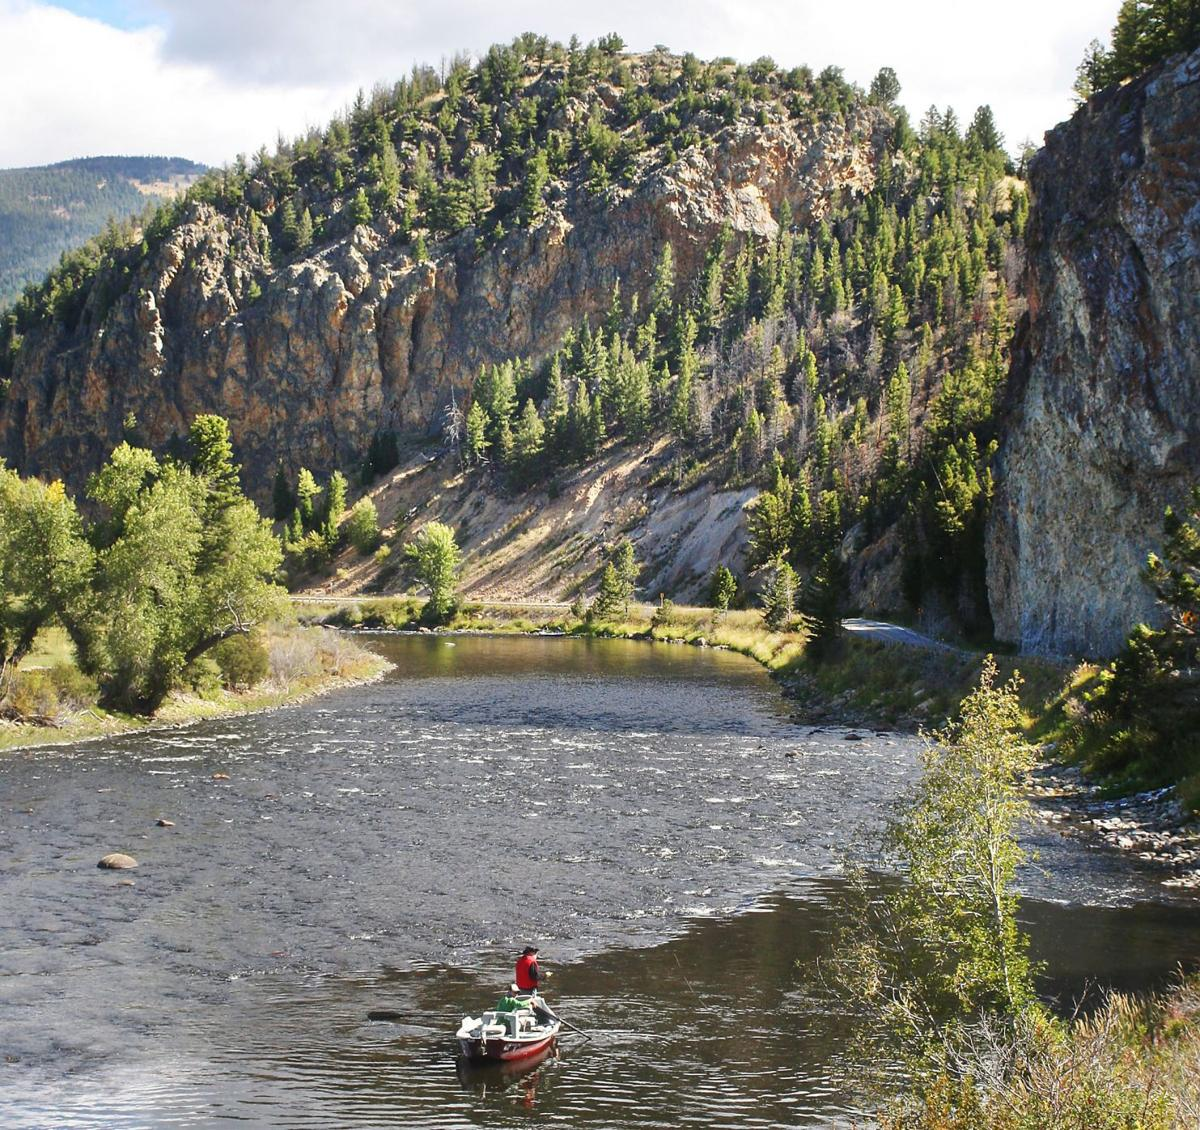 Outfitter challenges beaverhead big hole guiding rules for Beaverhead river fly fishing